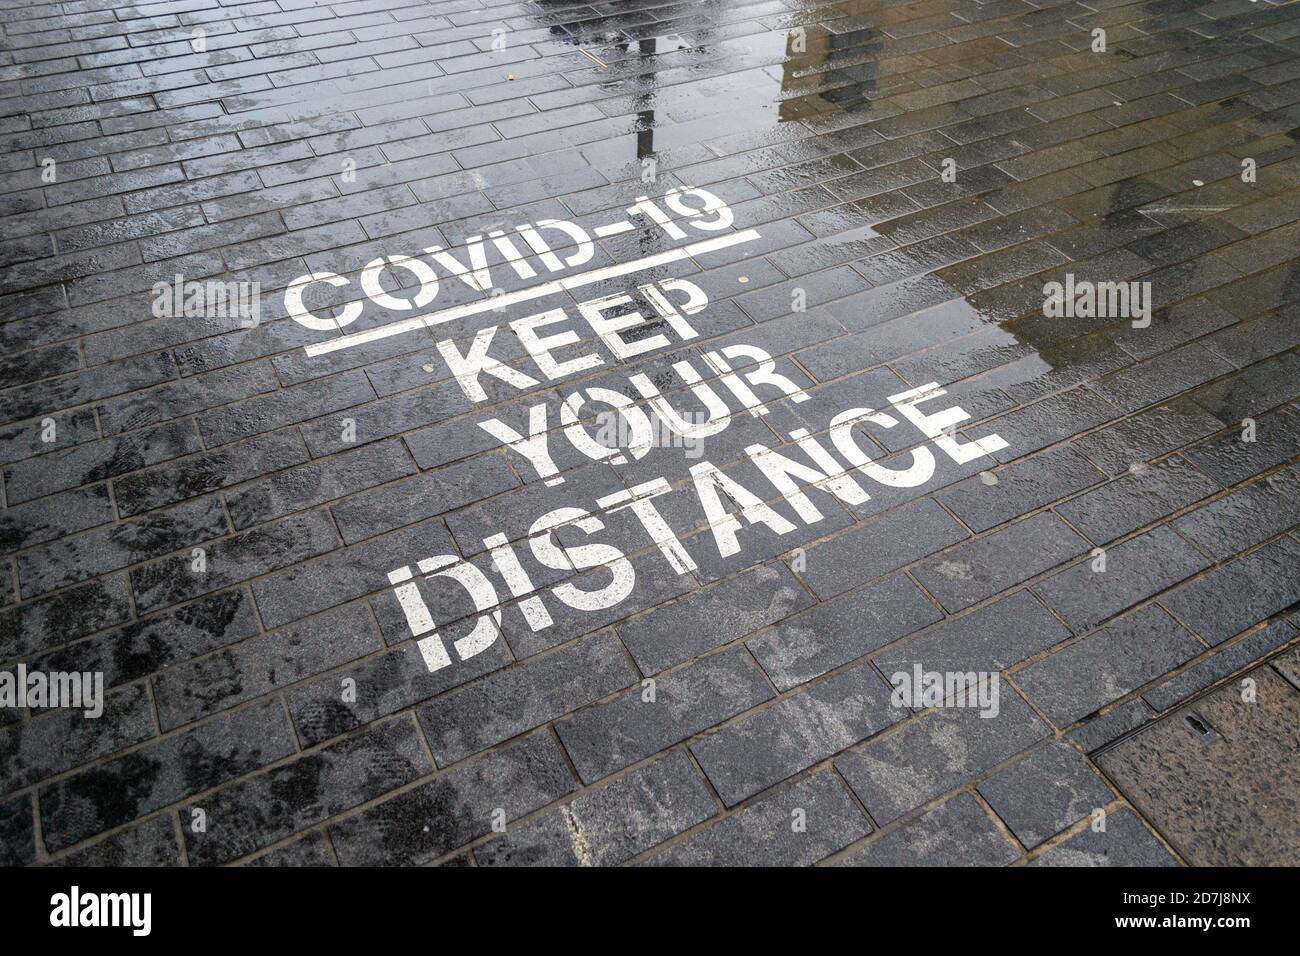 covid-19-keep-your-distance-stenciled-road-sign-social-distancing-birmingham-uk-2D7J8NX.jpg